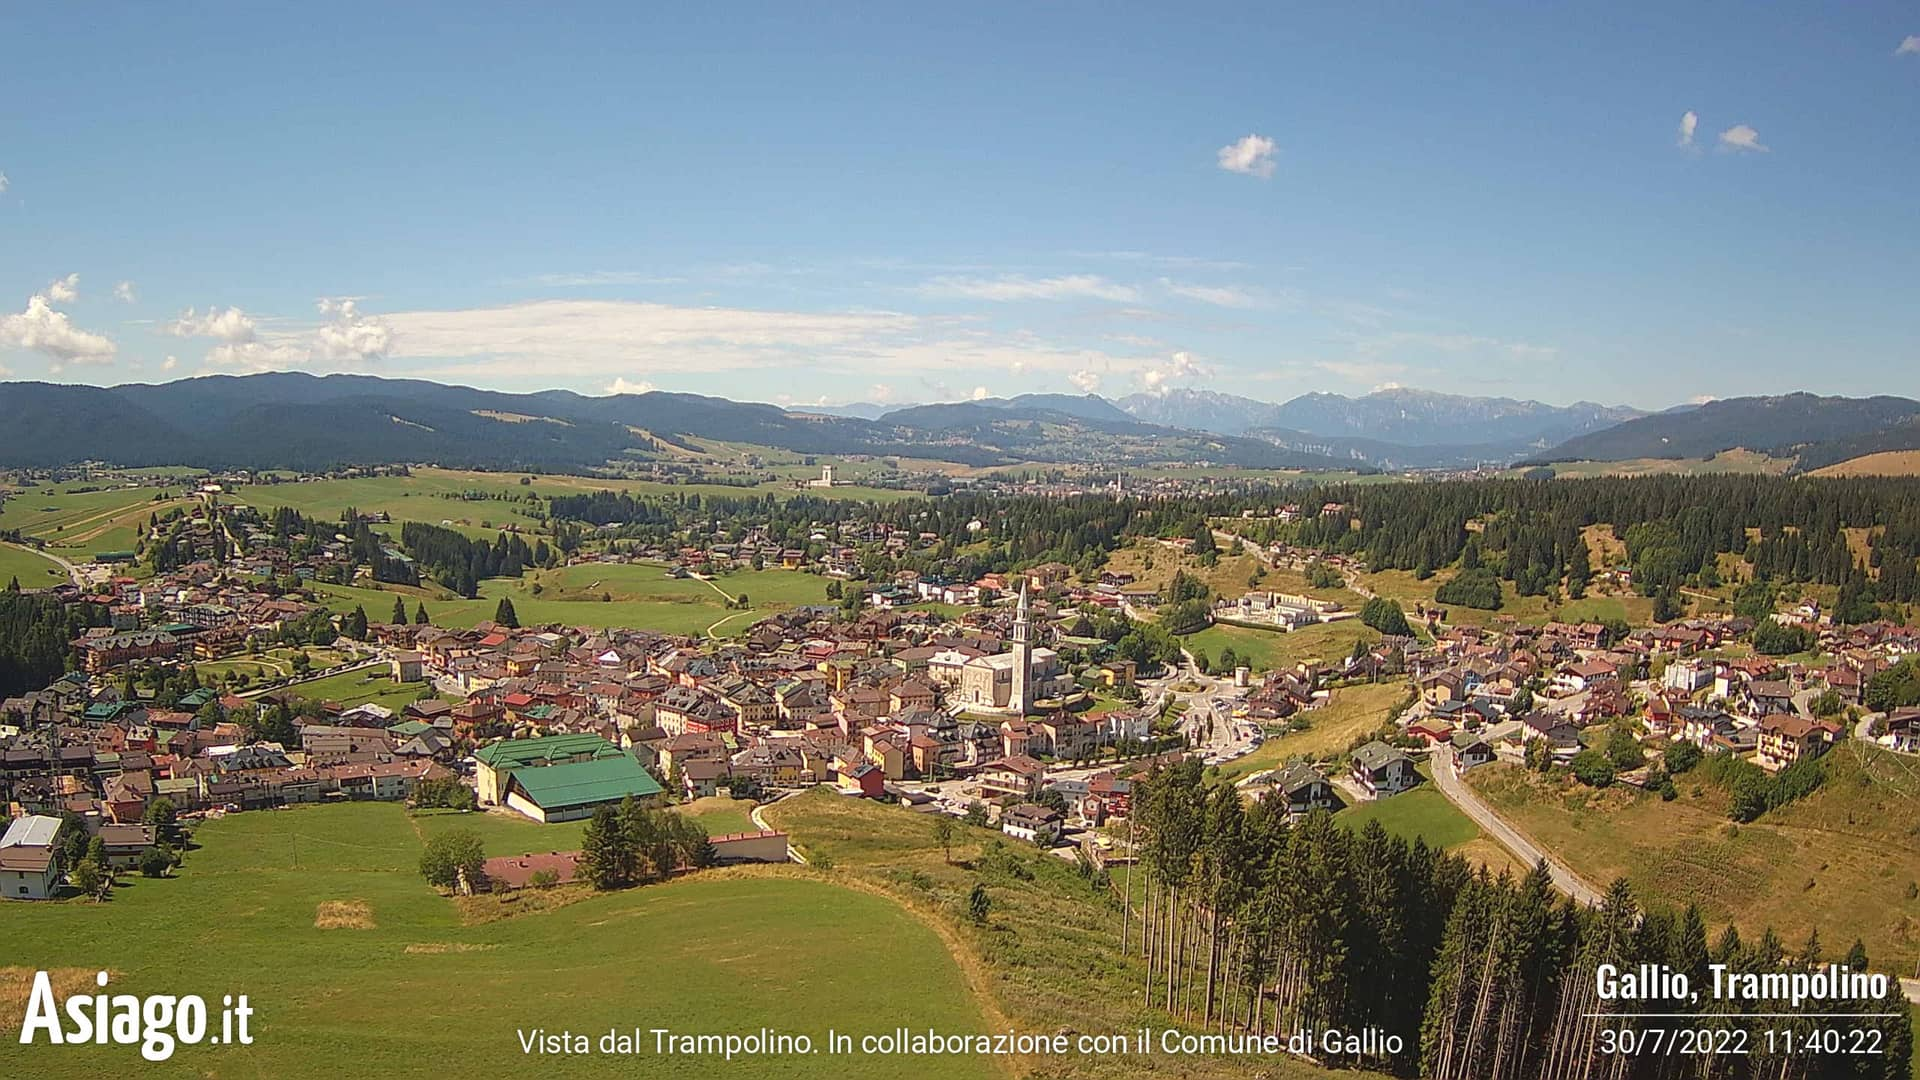 Webcam live dal trampolino di Gallio